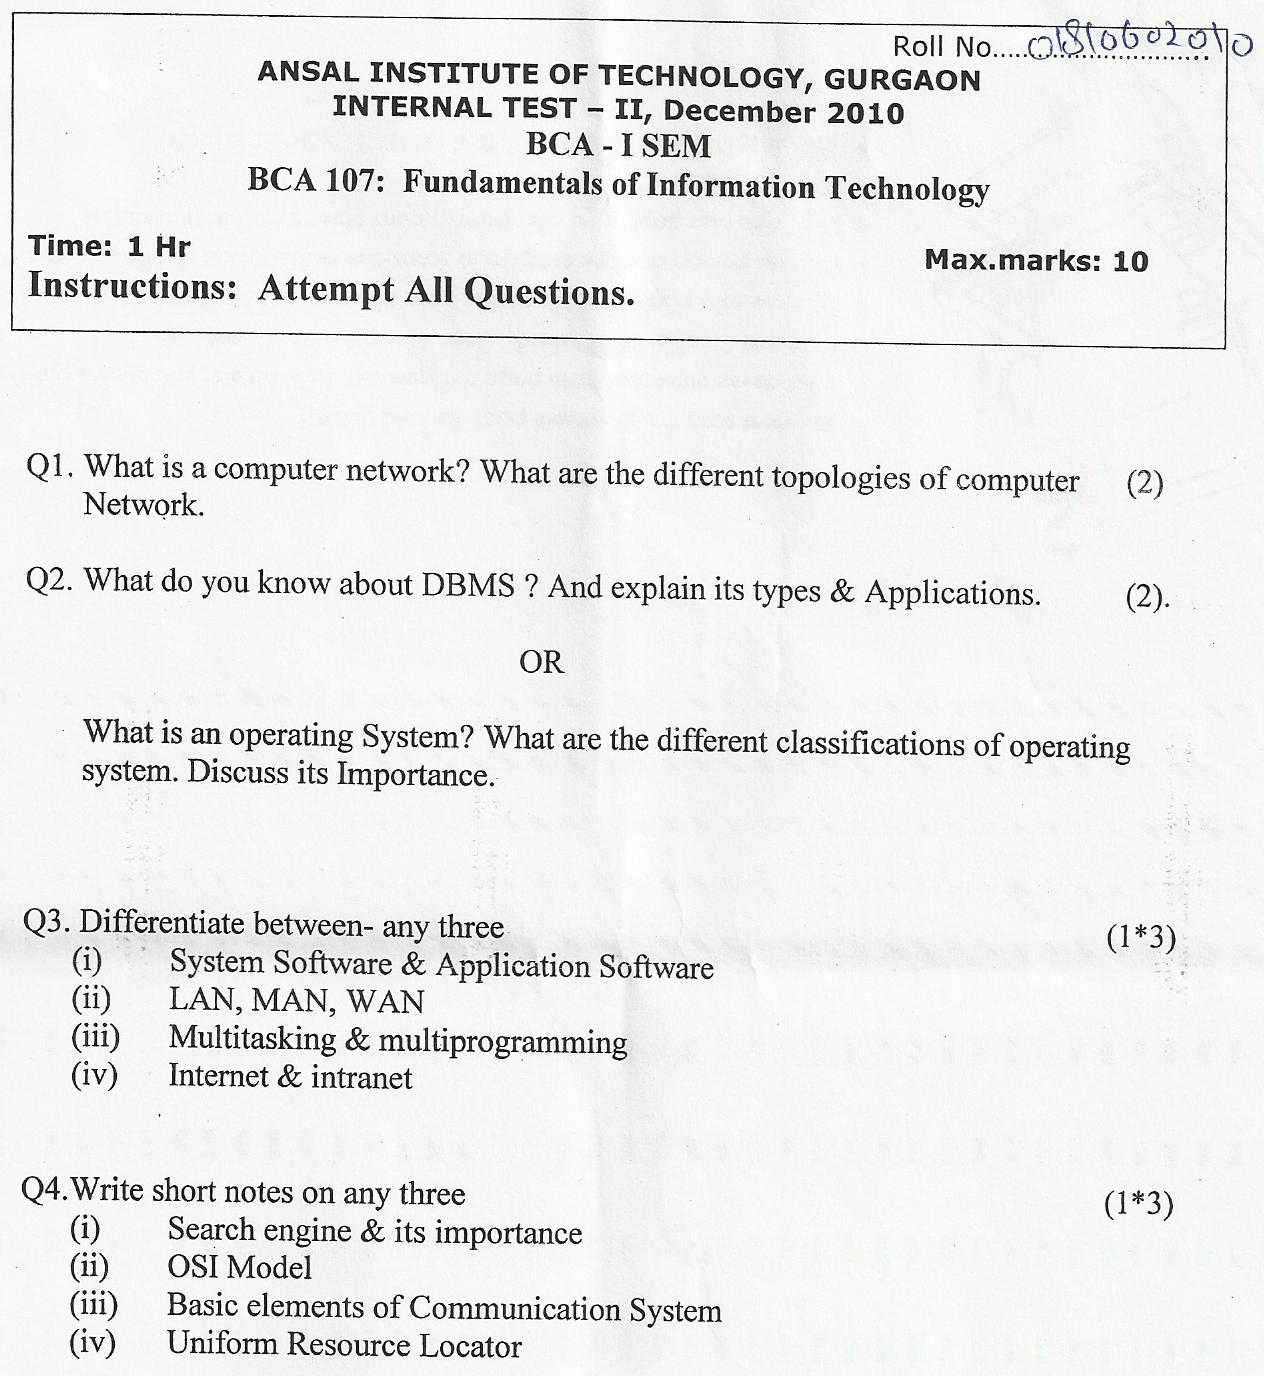 investigating the importance of wan technologies information technology essay This paper investigates how citizens use technology to support  results  suggest that technologies intended for crime prevention  cecile paris , stephen  wan, listening to the community: social  skogan, w g, and hartnett, s m the  diffusion of information technology in  the essay has three parts.